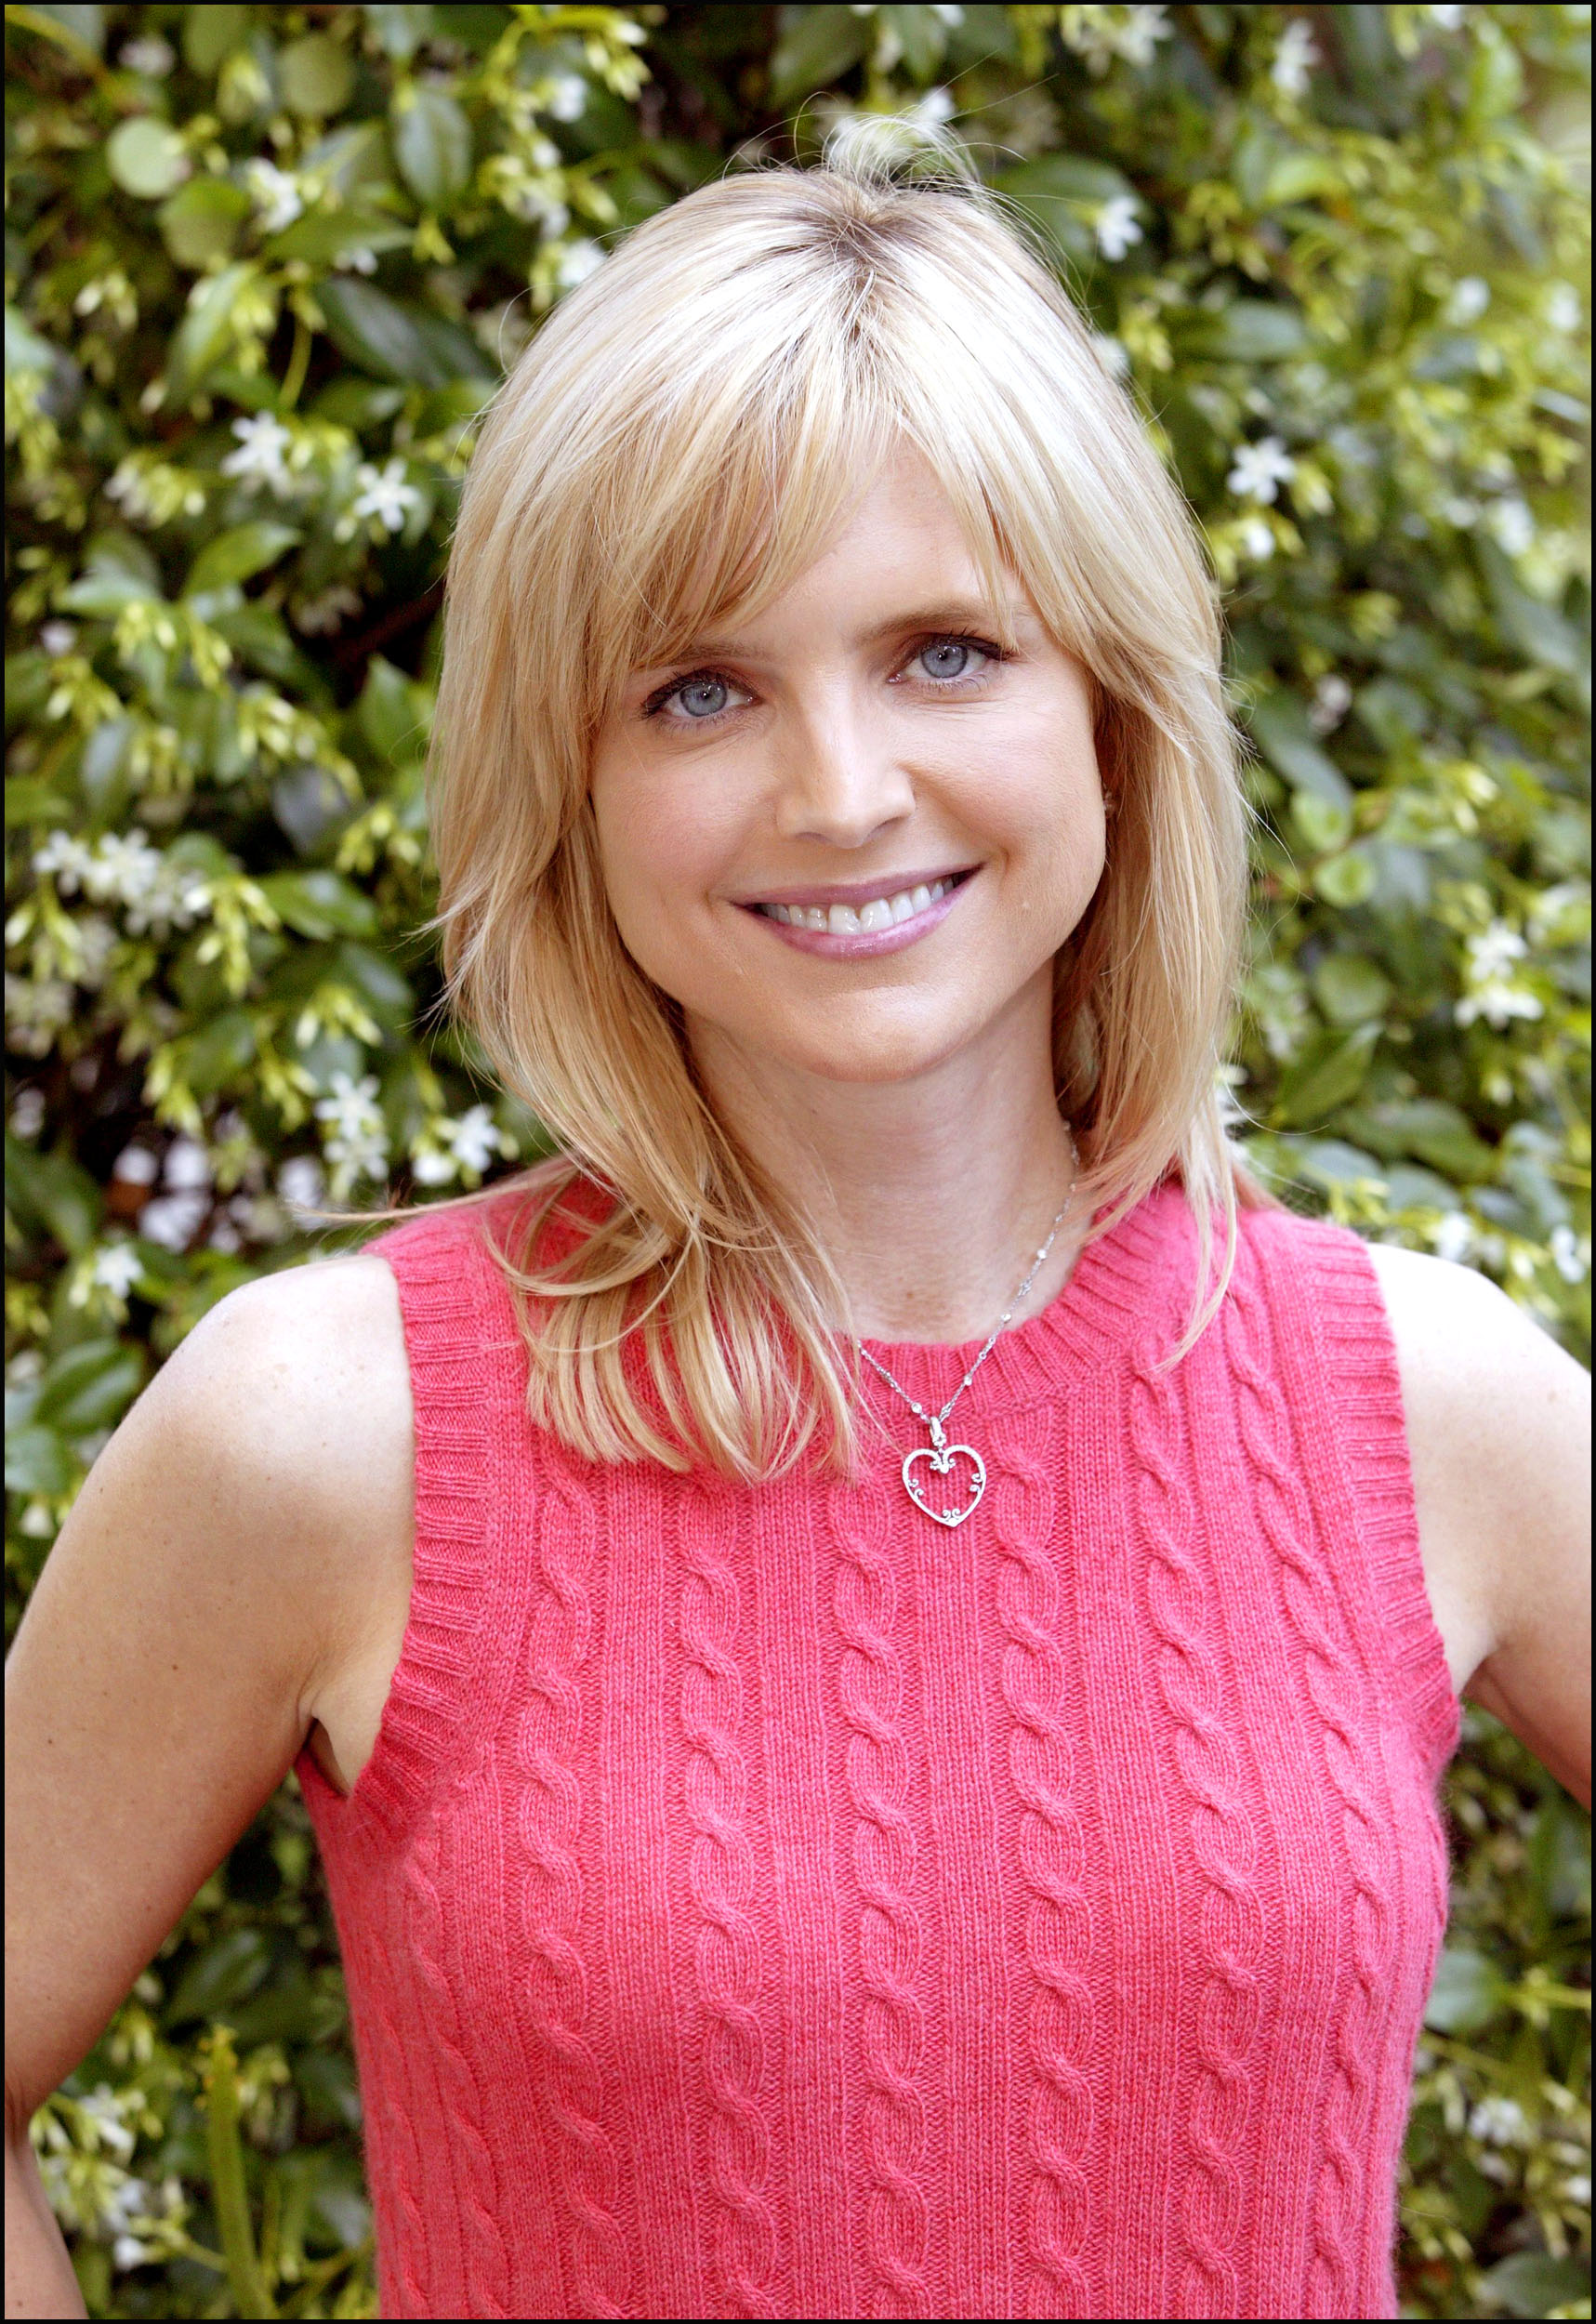 The 49-year old daughter of father Walter Smith and mother Lora Smith, 168 cm tall Courtney Thorne-Smith in 2017 photo